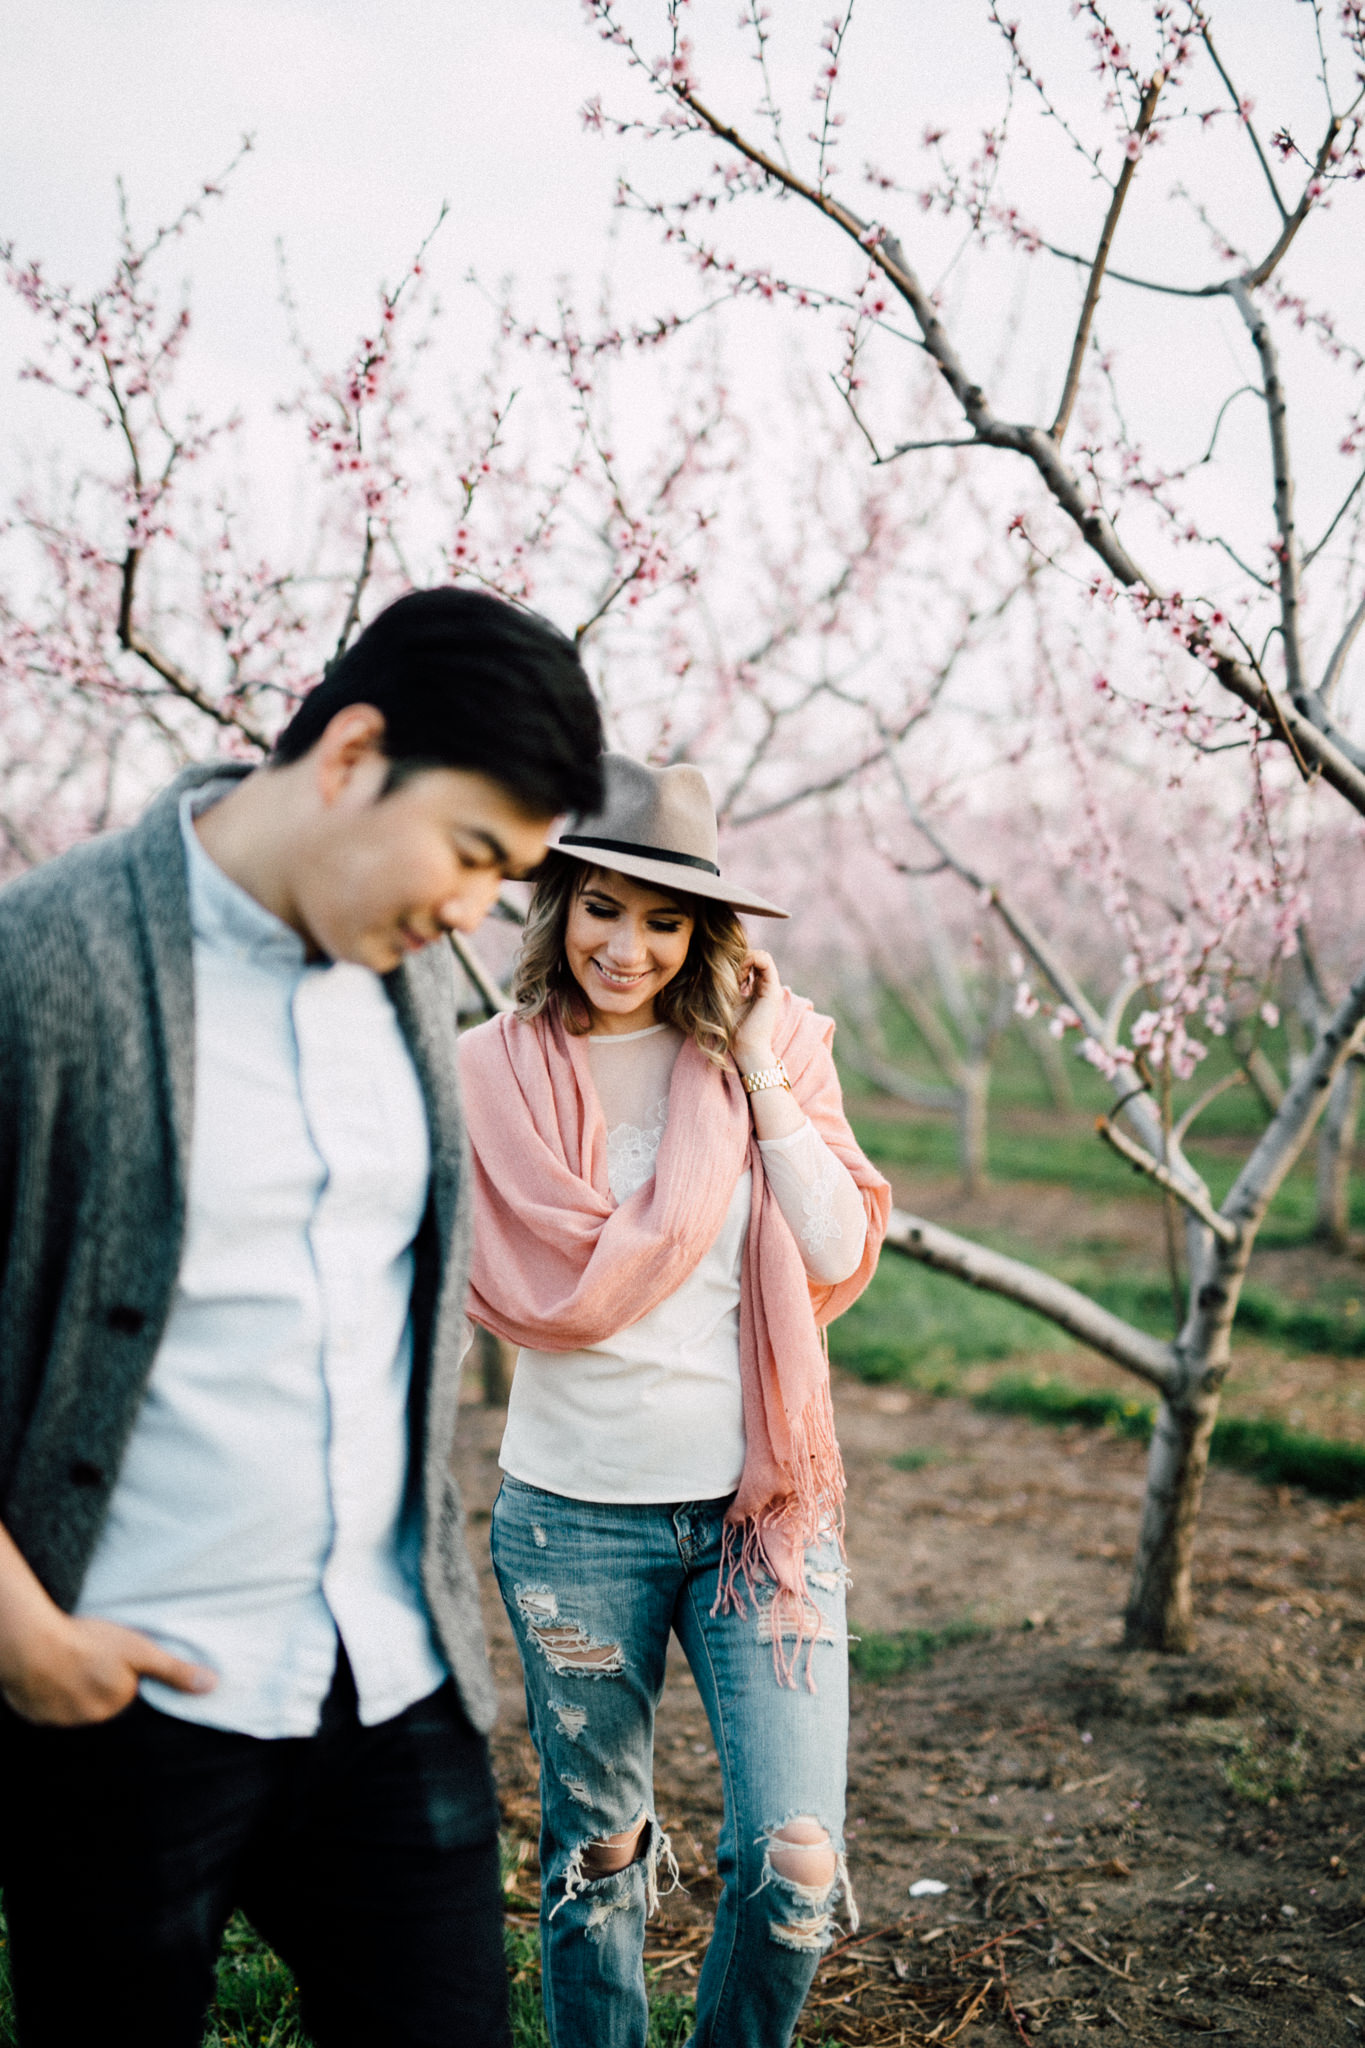 Niagara-Portrait-Session-Niagara-On-The-Lake-Cherry-Blossoms-photography-by-Simply-Lace-Photography-041.JPG